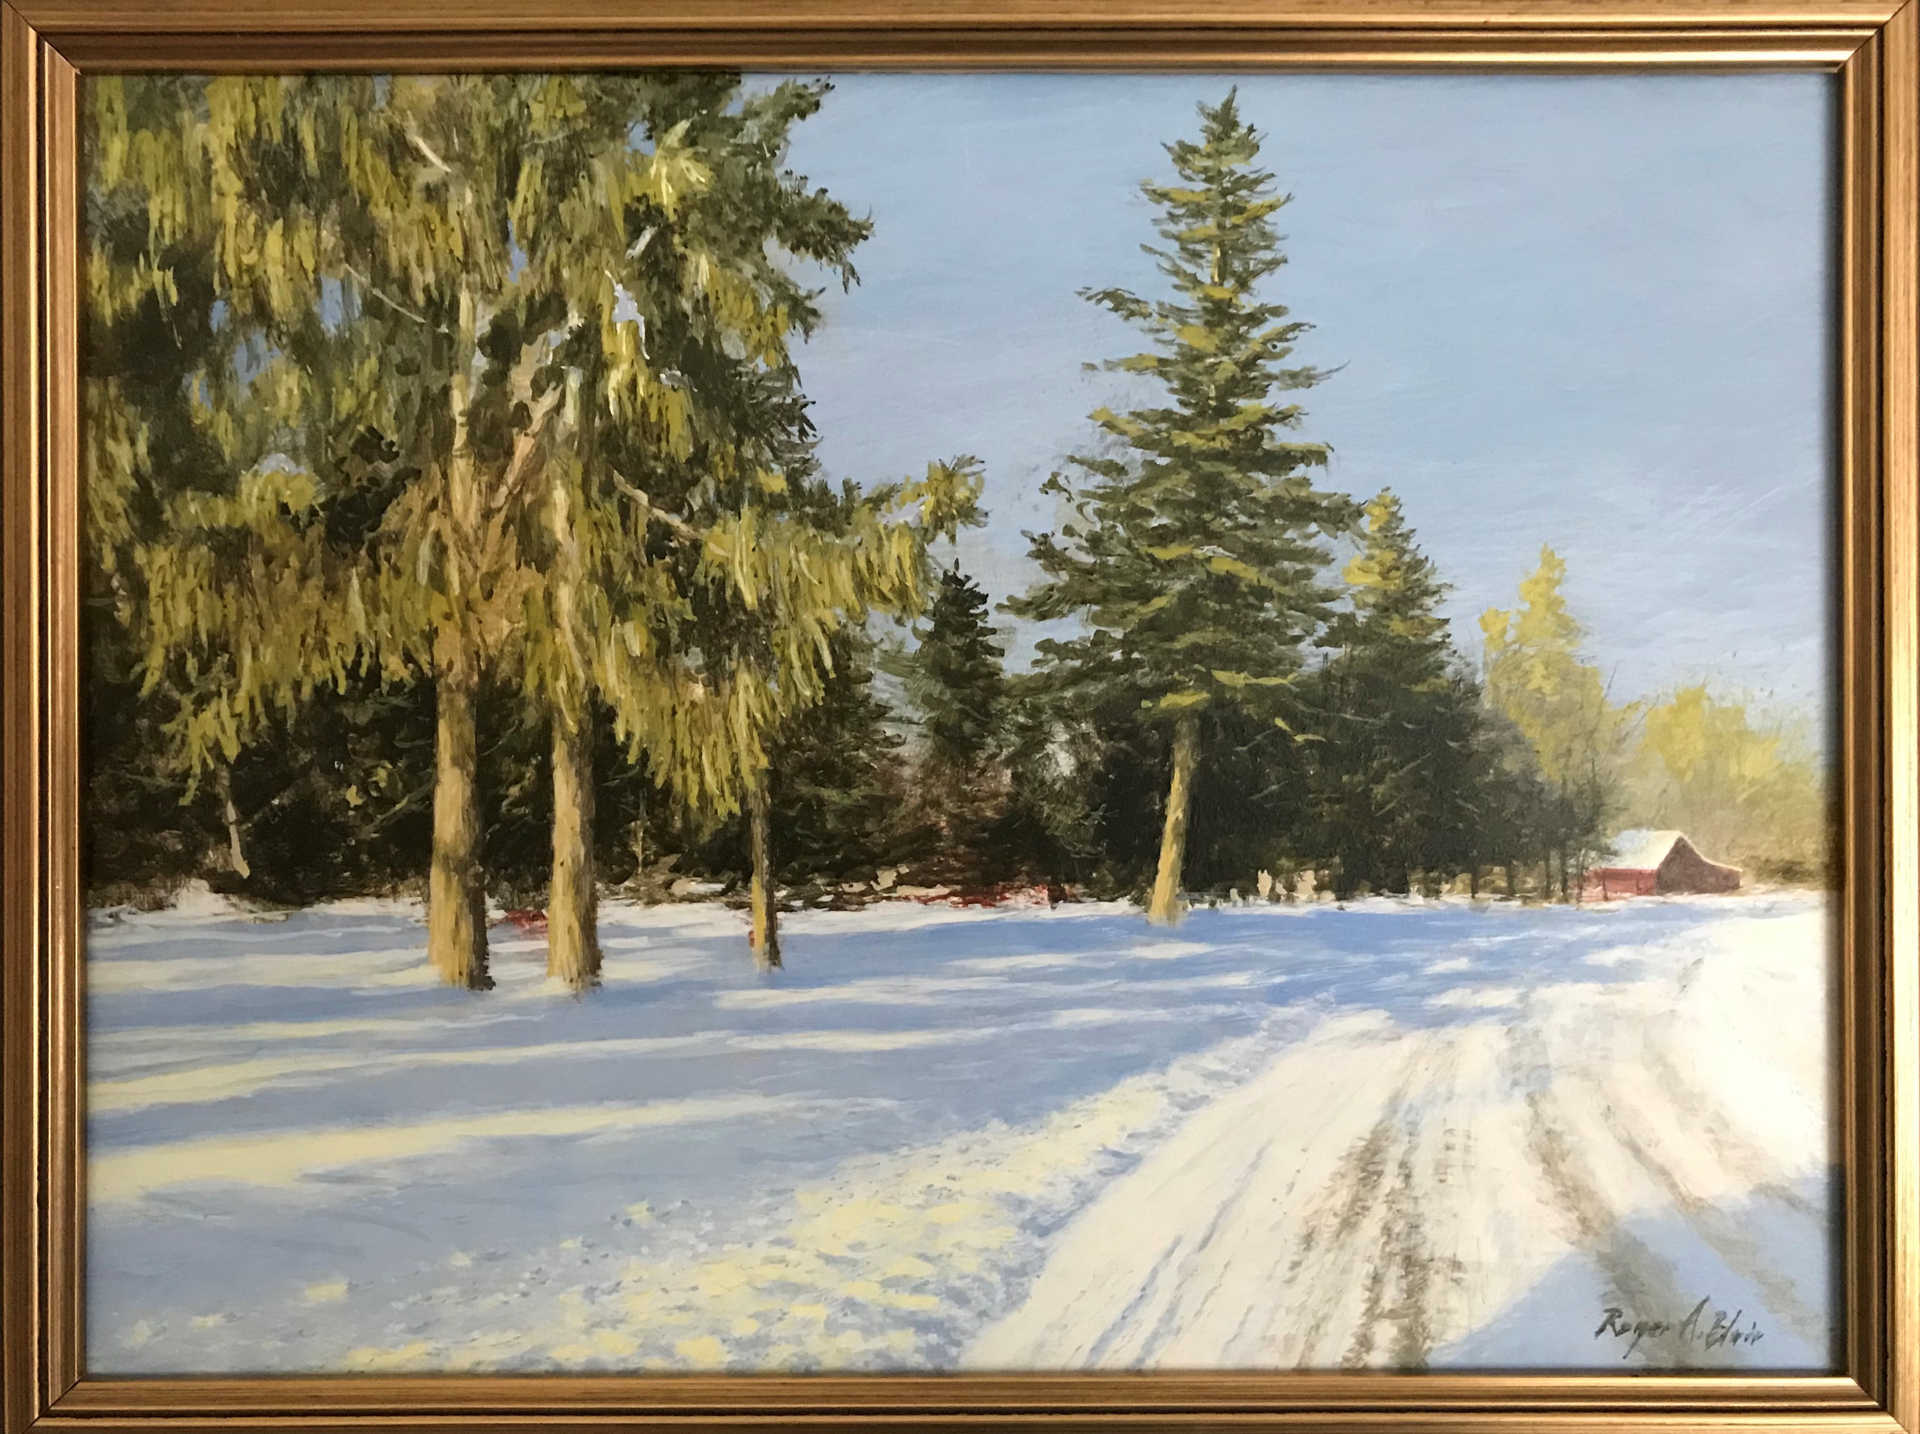 Winter Scape by Roger Blair